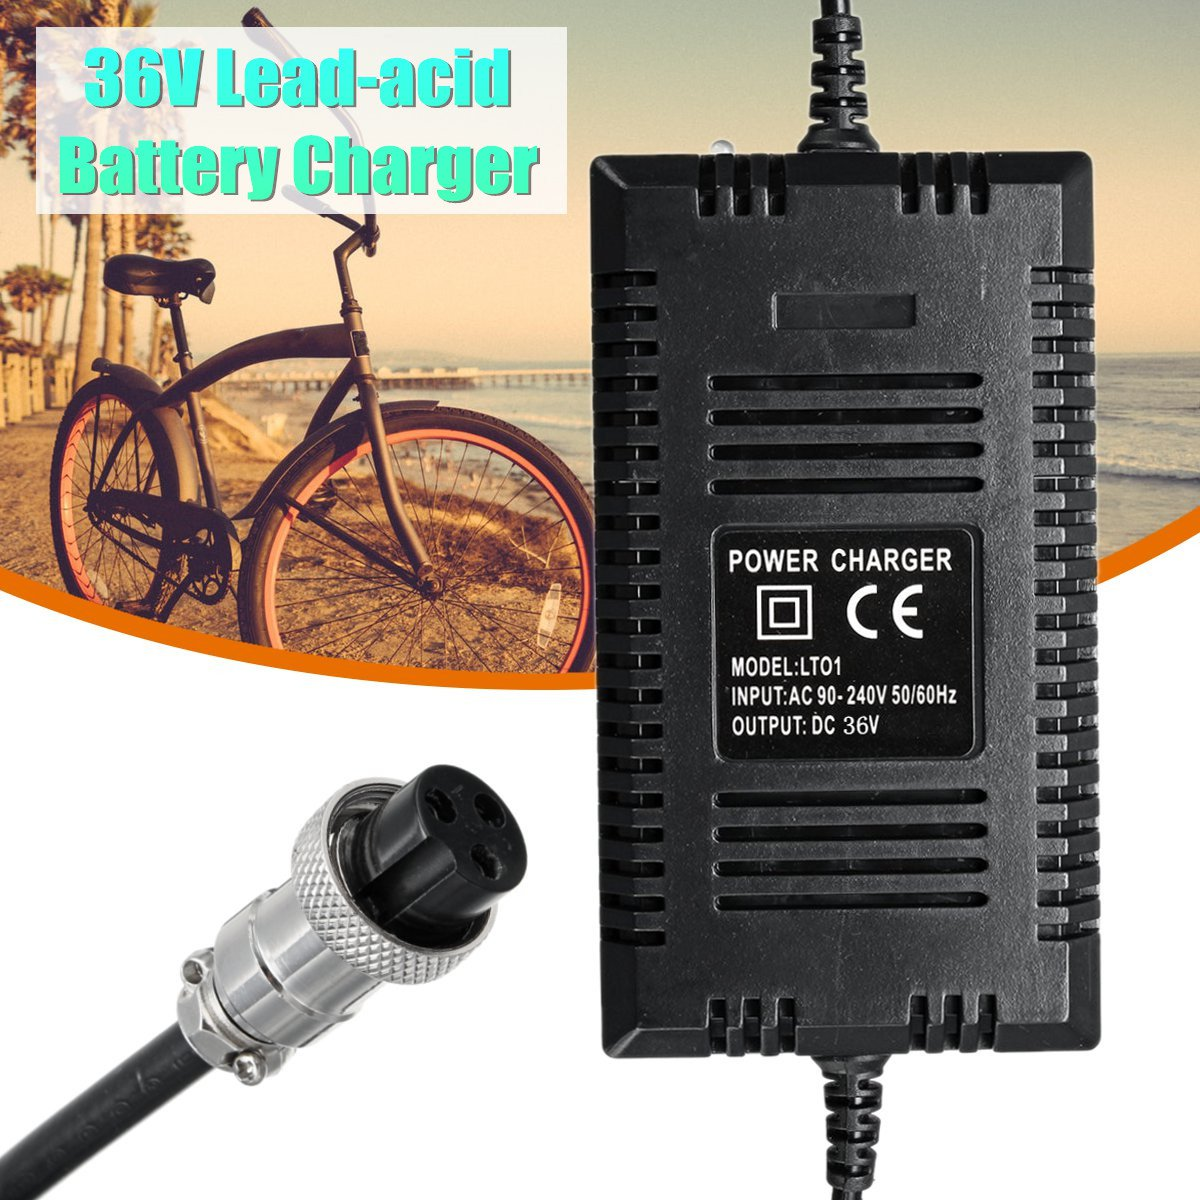 36V 2A Electric Scooter Ebike Charger Lead-acid Battery Charger Wide Pressure For Bicycle-modified Electric Vehicles